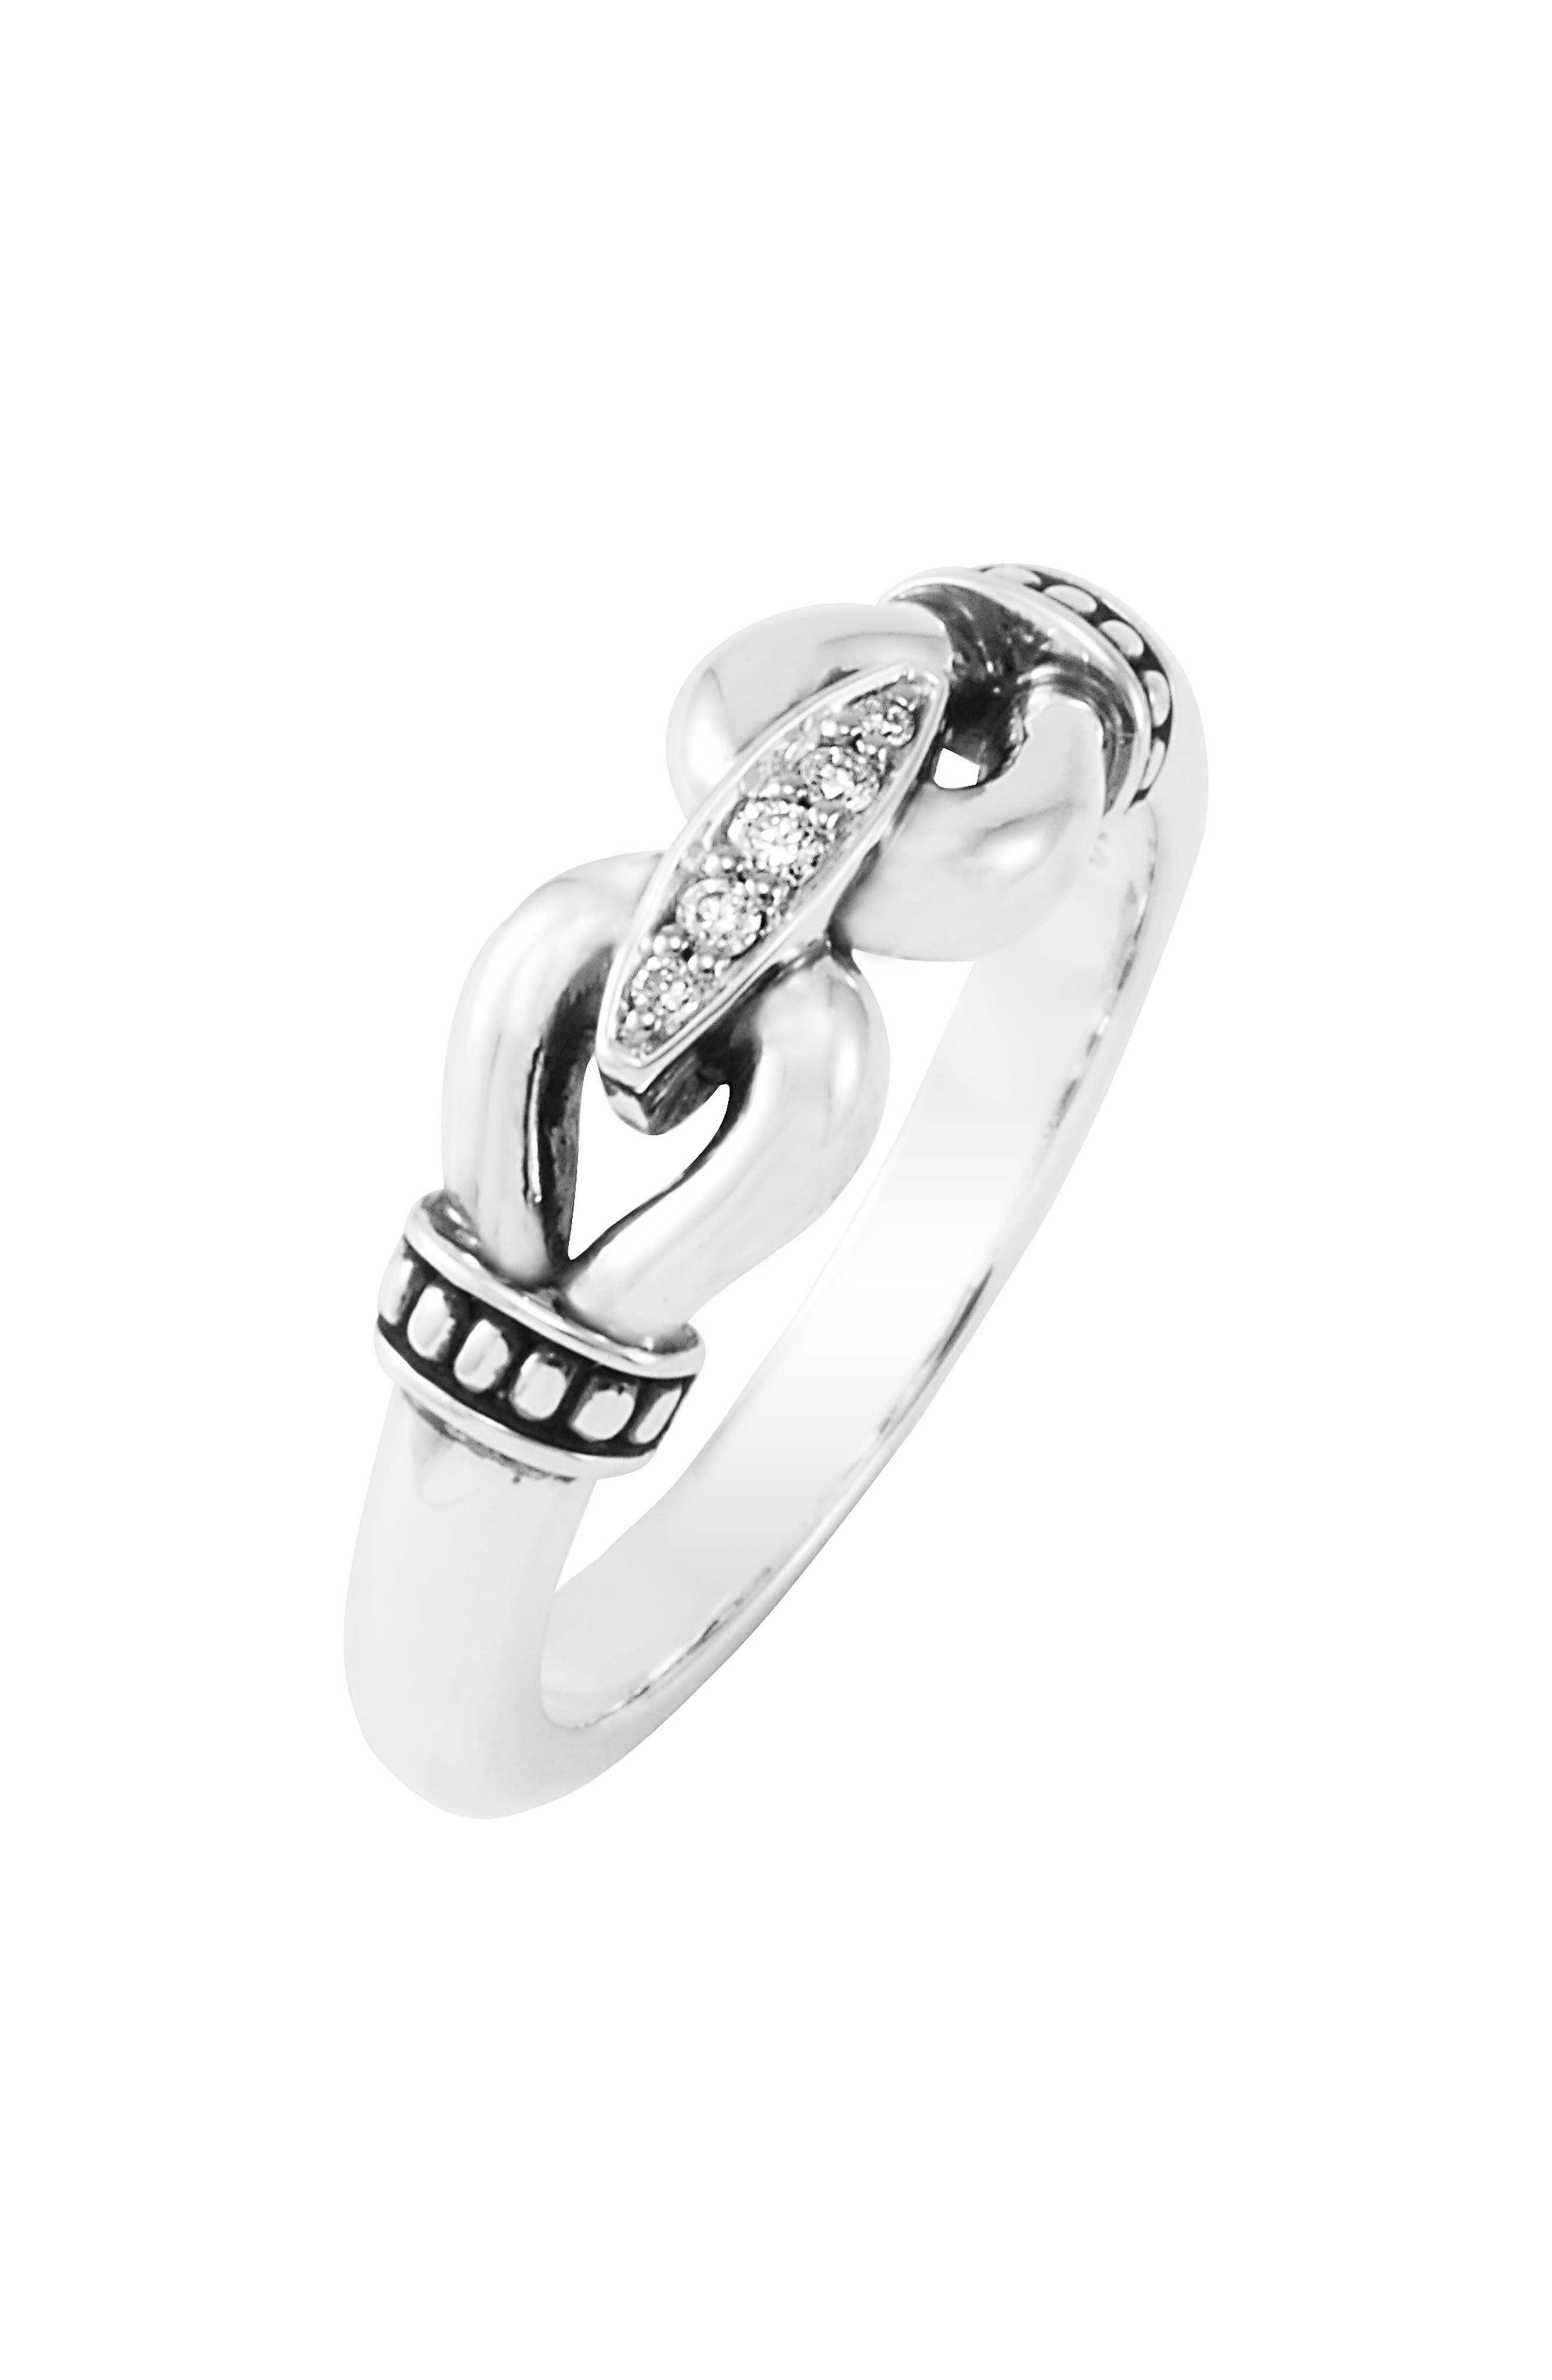 'Derby' Small Diamond Ring,                             Alternate thumbnail 2, color,                             040